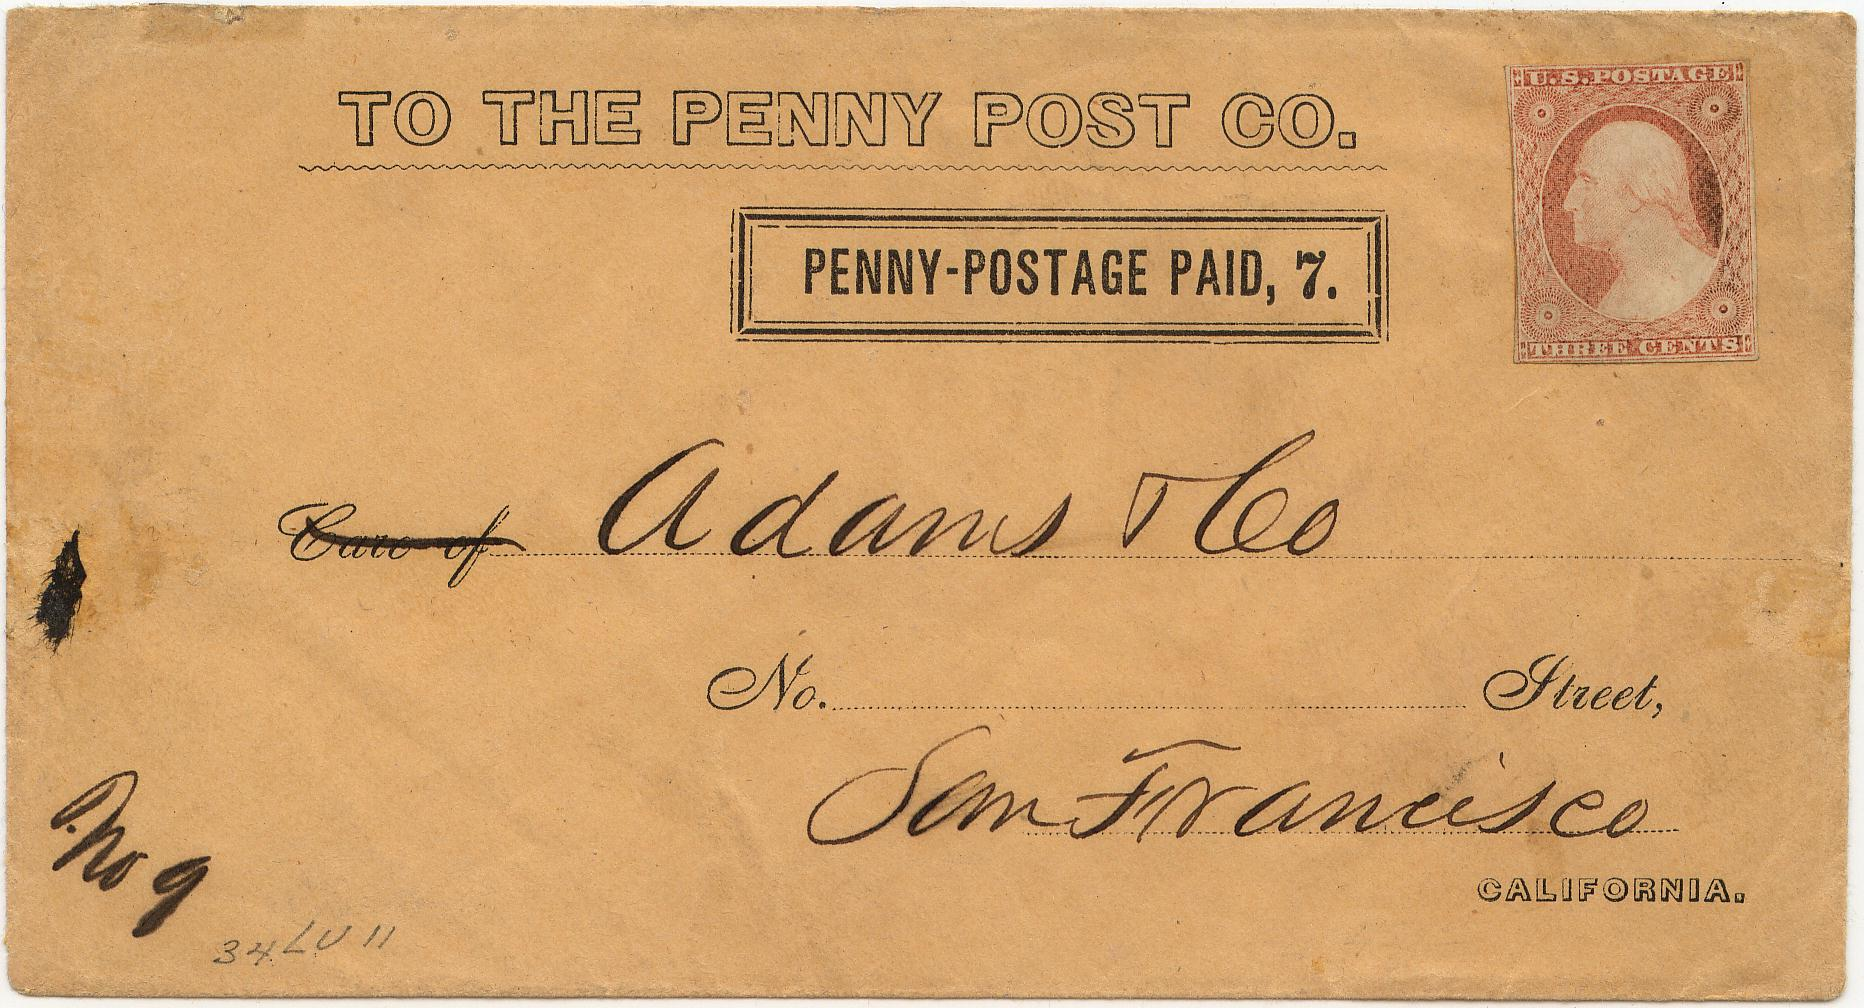 PennyPost Frank 7c Rectangle 0903 Mader